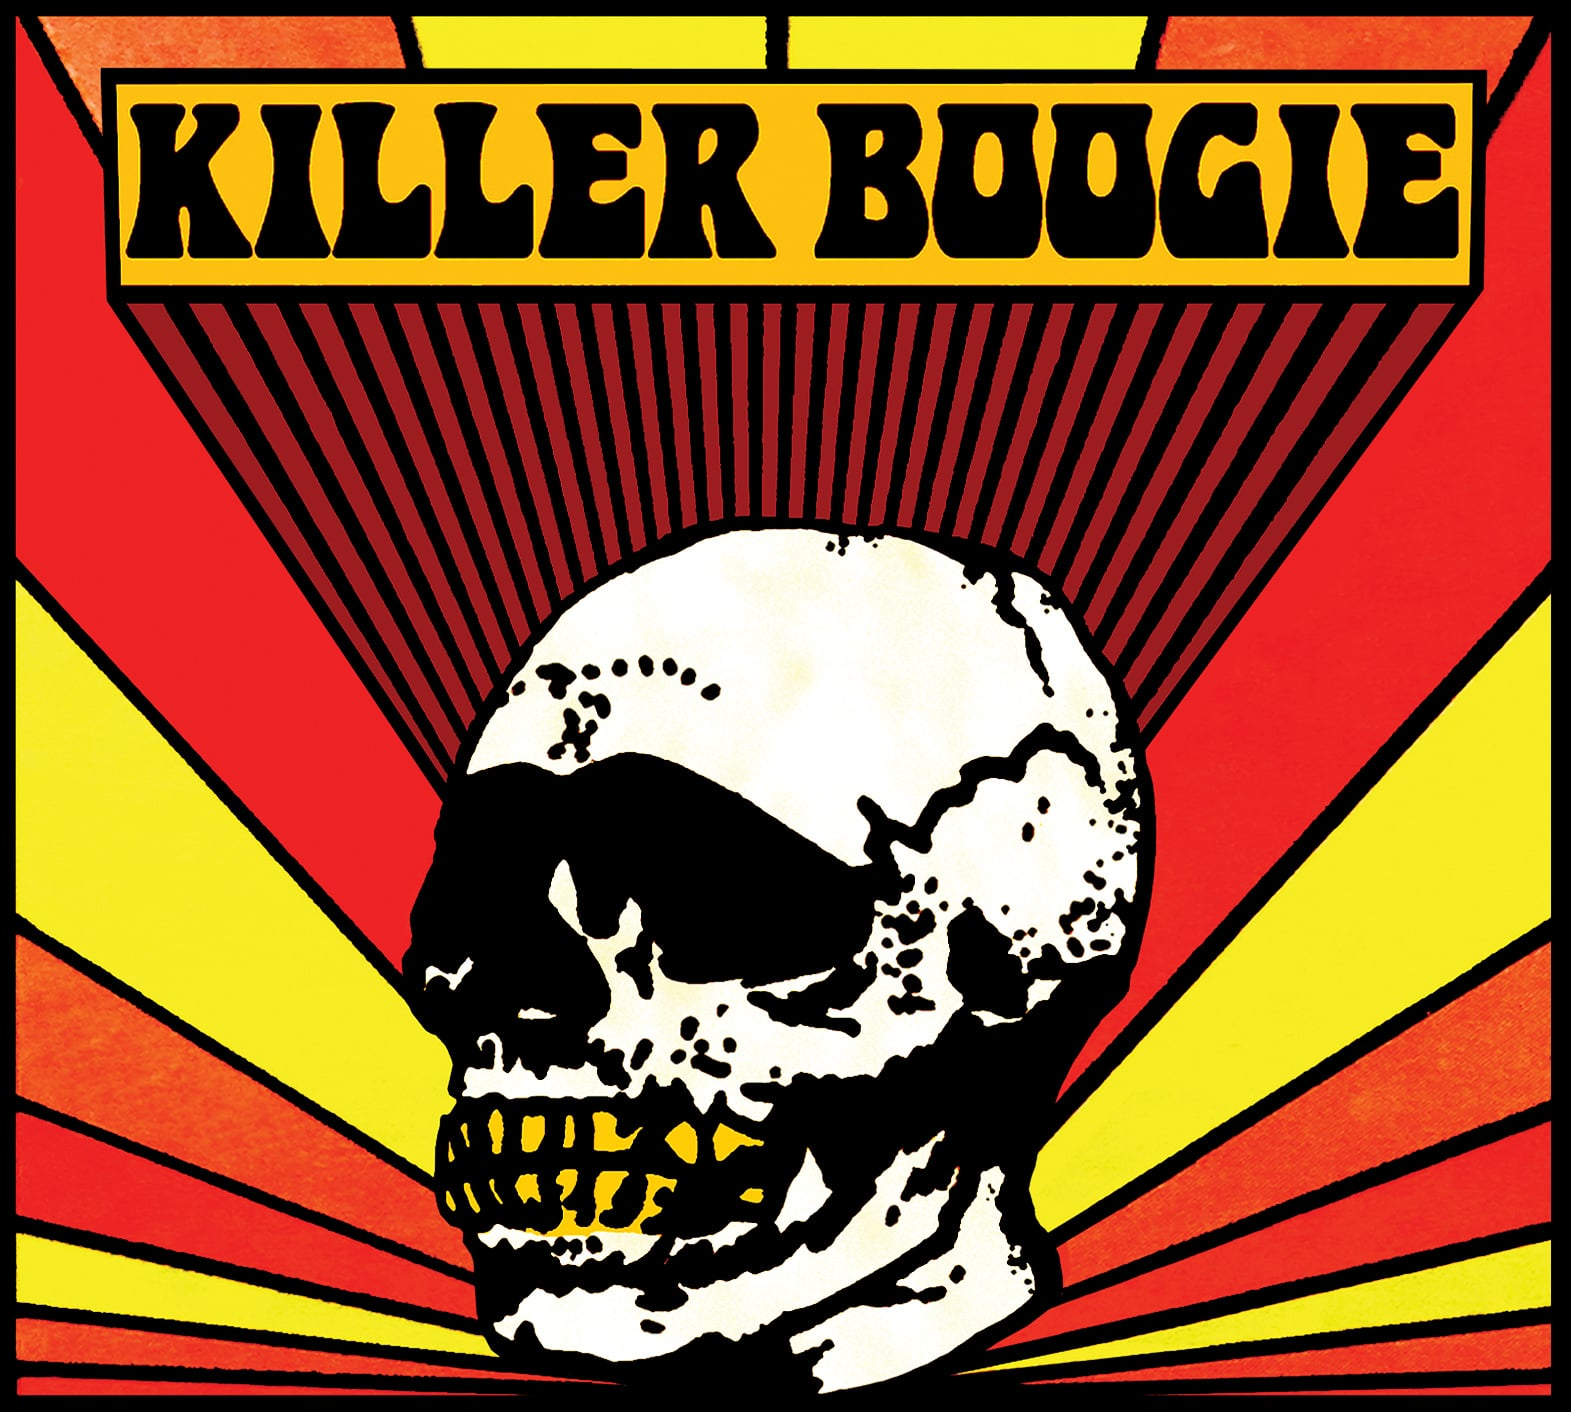 STARCADE DESIGNS FOR KILLER BOOGIE / LOGO DESIGN, FRONT COVER / ©KILLER BOOGIE        .